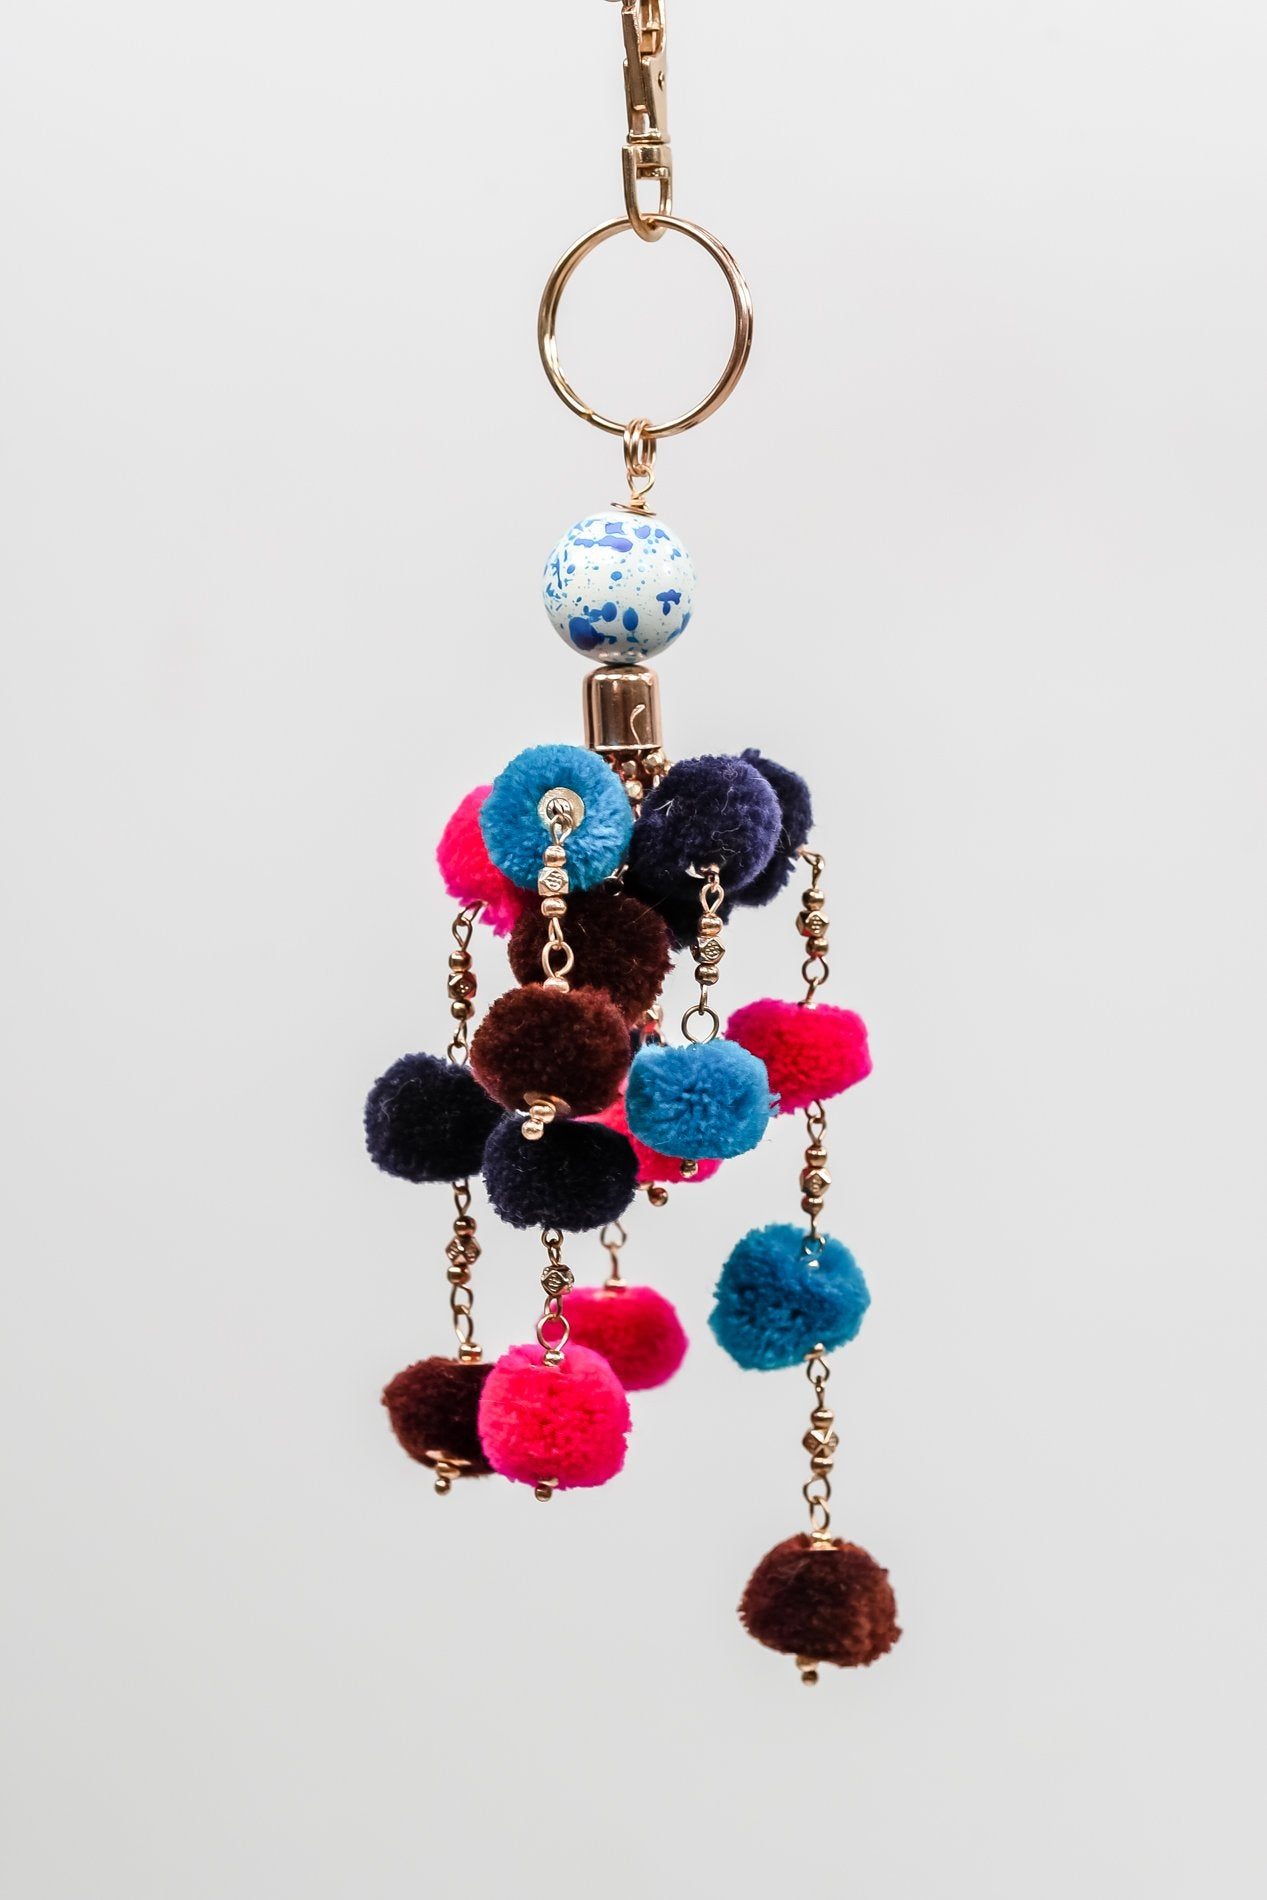 Multi-Color Pom-Pom Keychain - KEY1065MU